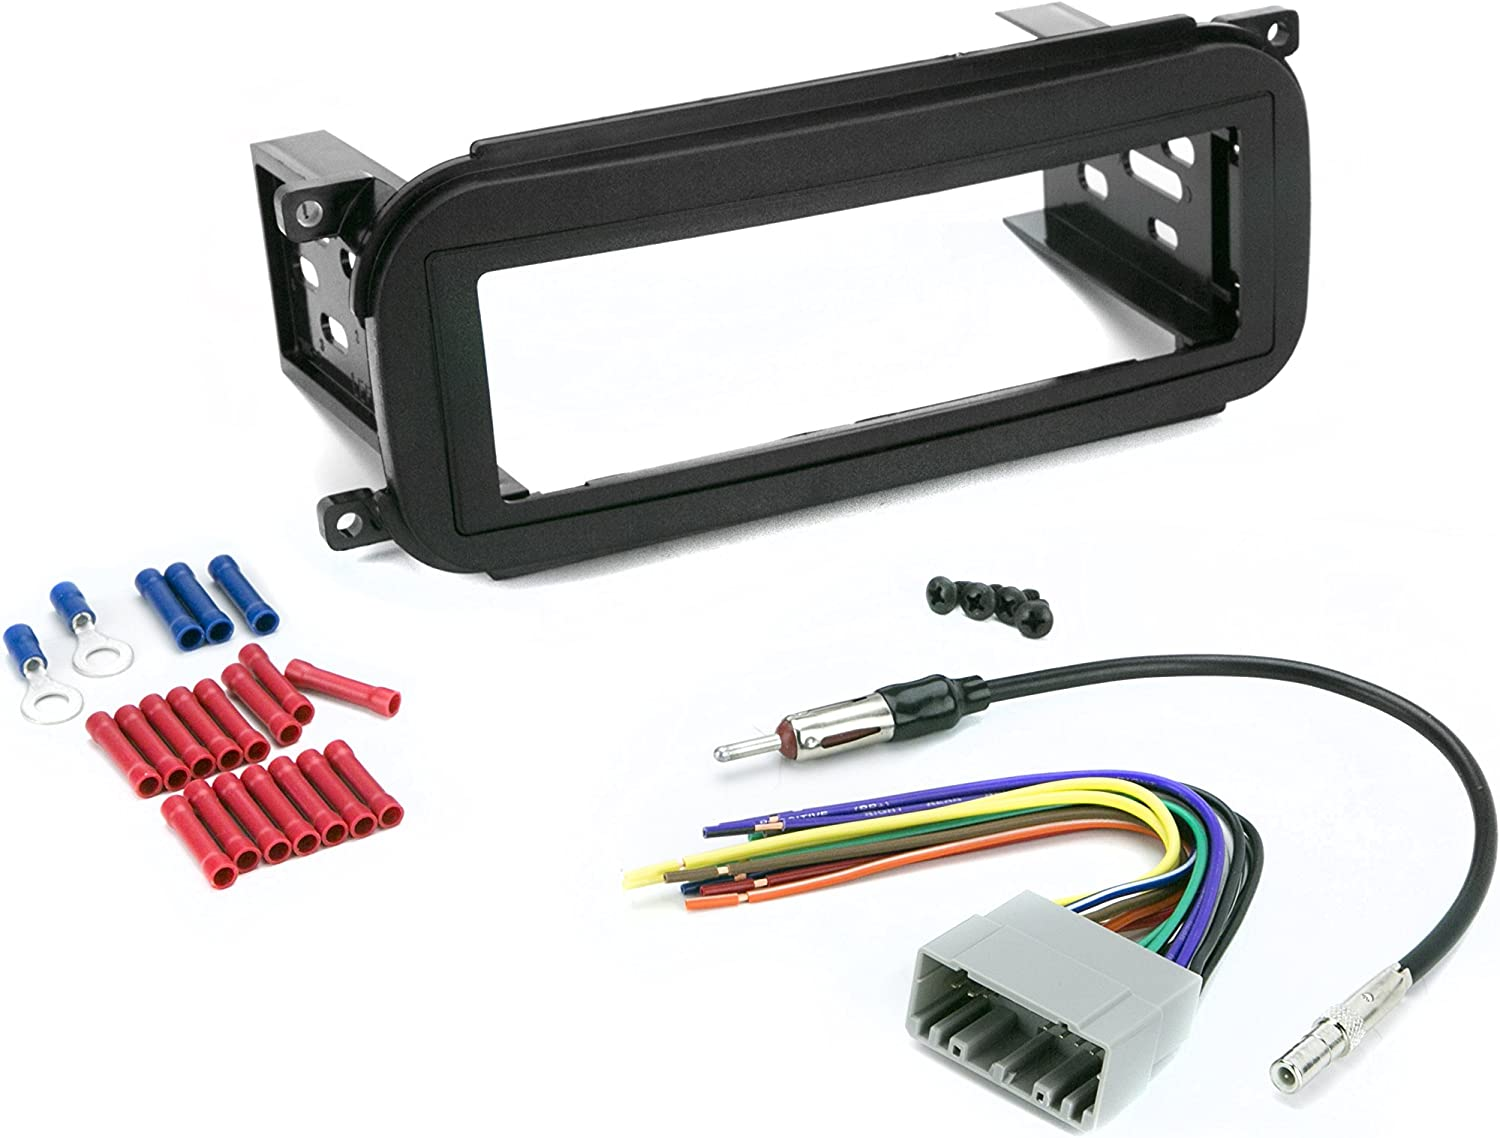 crb630 installation kitcrb6304 a.i for chrysler//dodge//plymouth//jeep American international